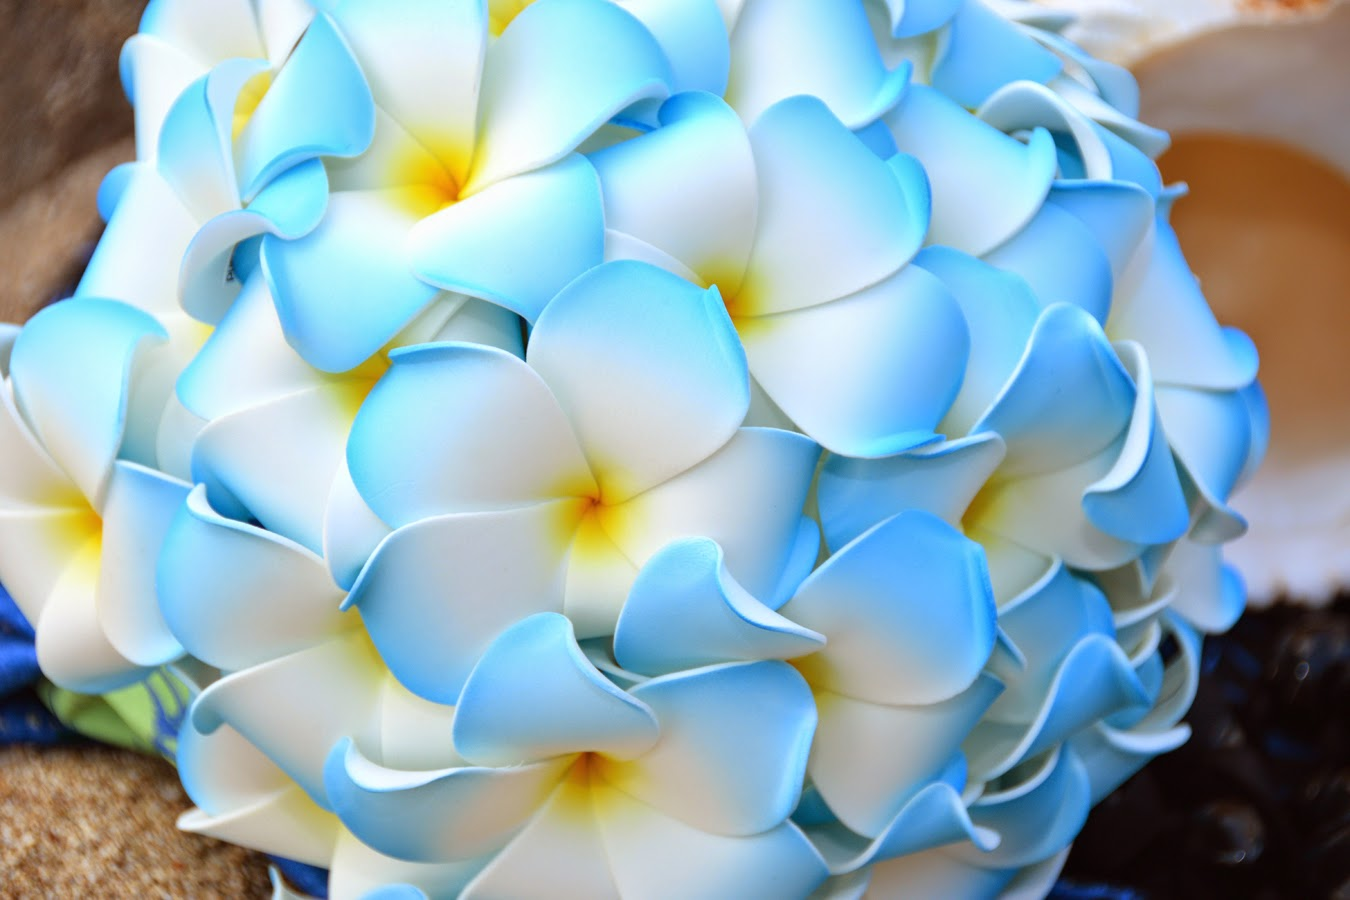 Blue Flowers In Hawaii 30 Wide Wallpaper ...